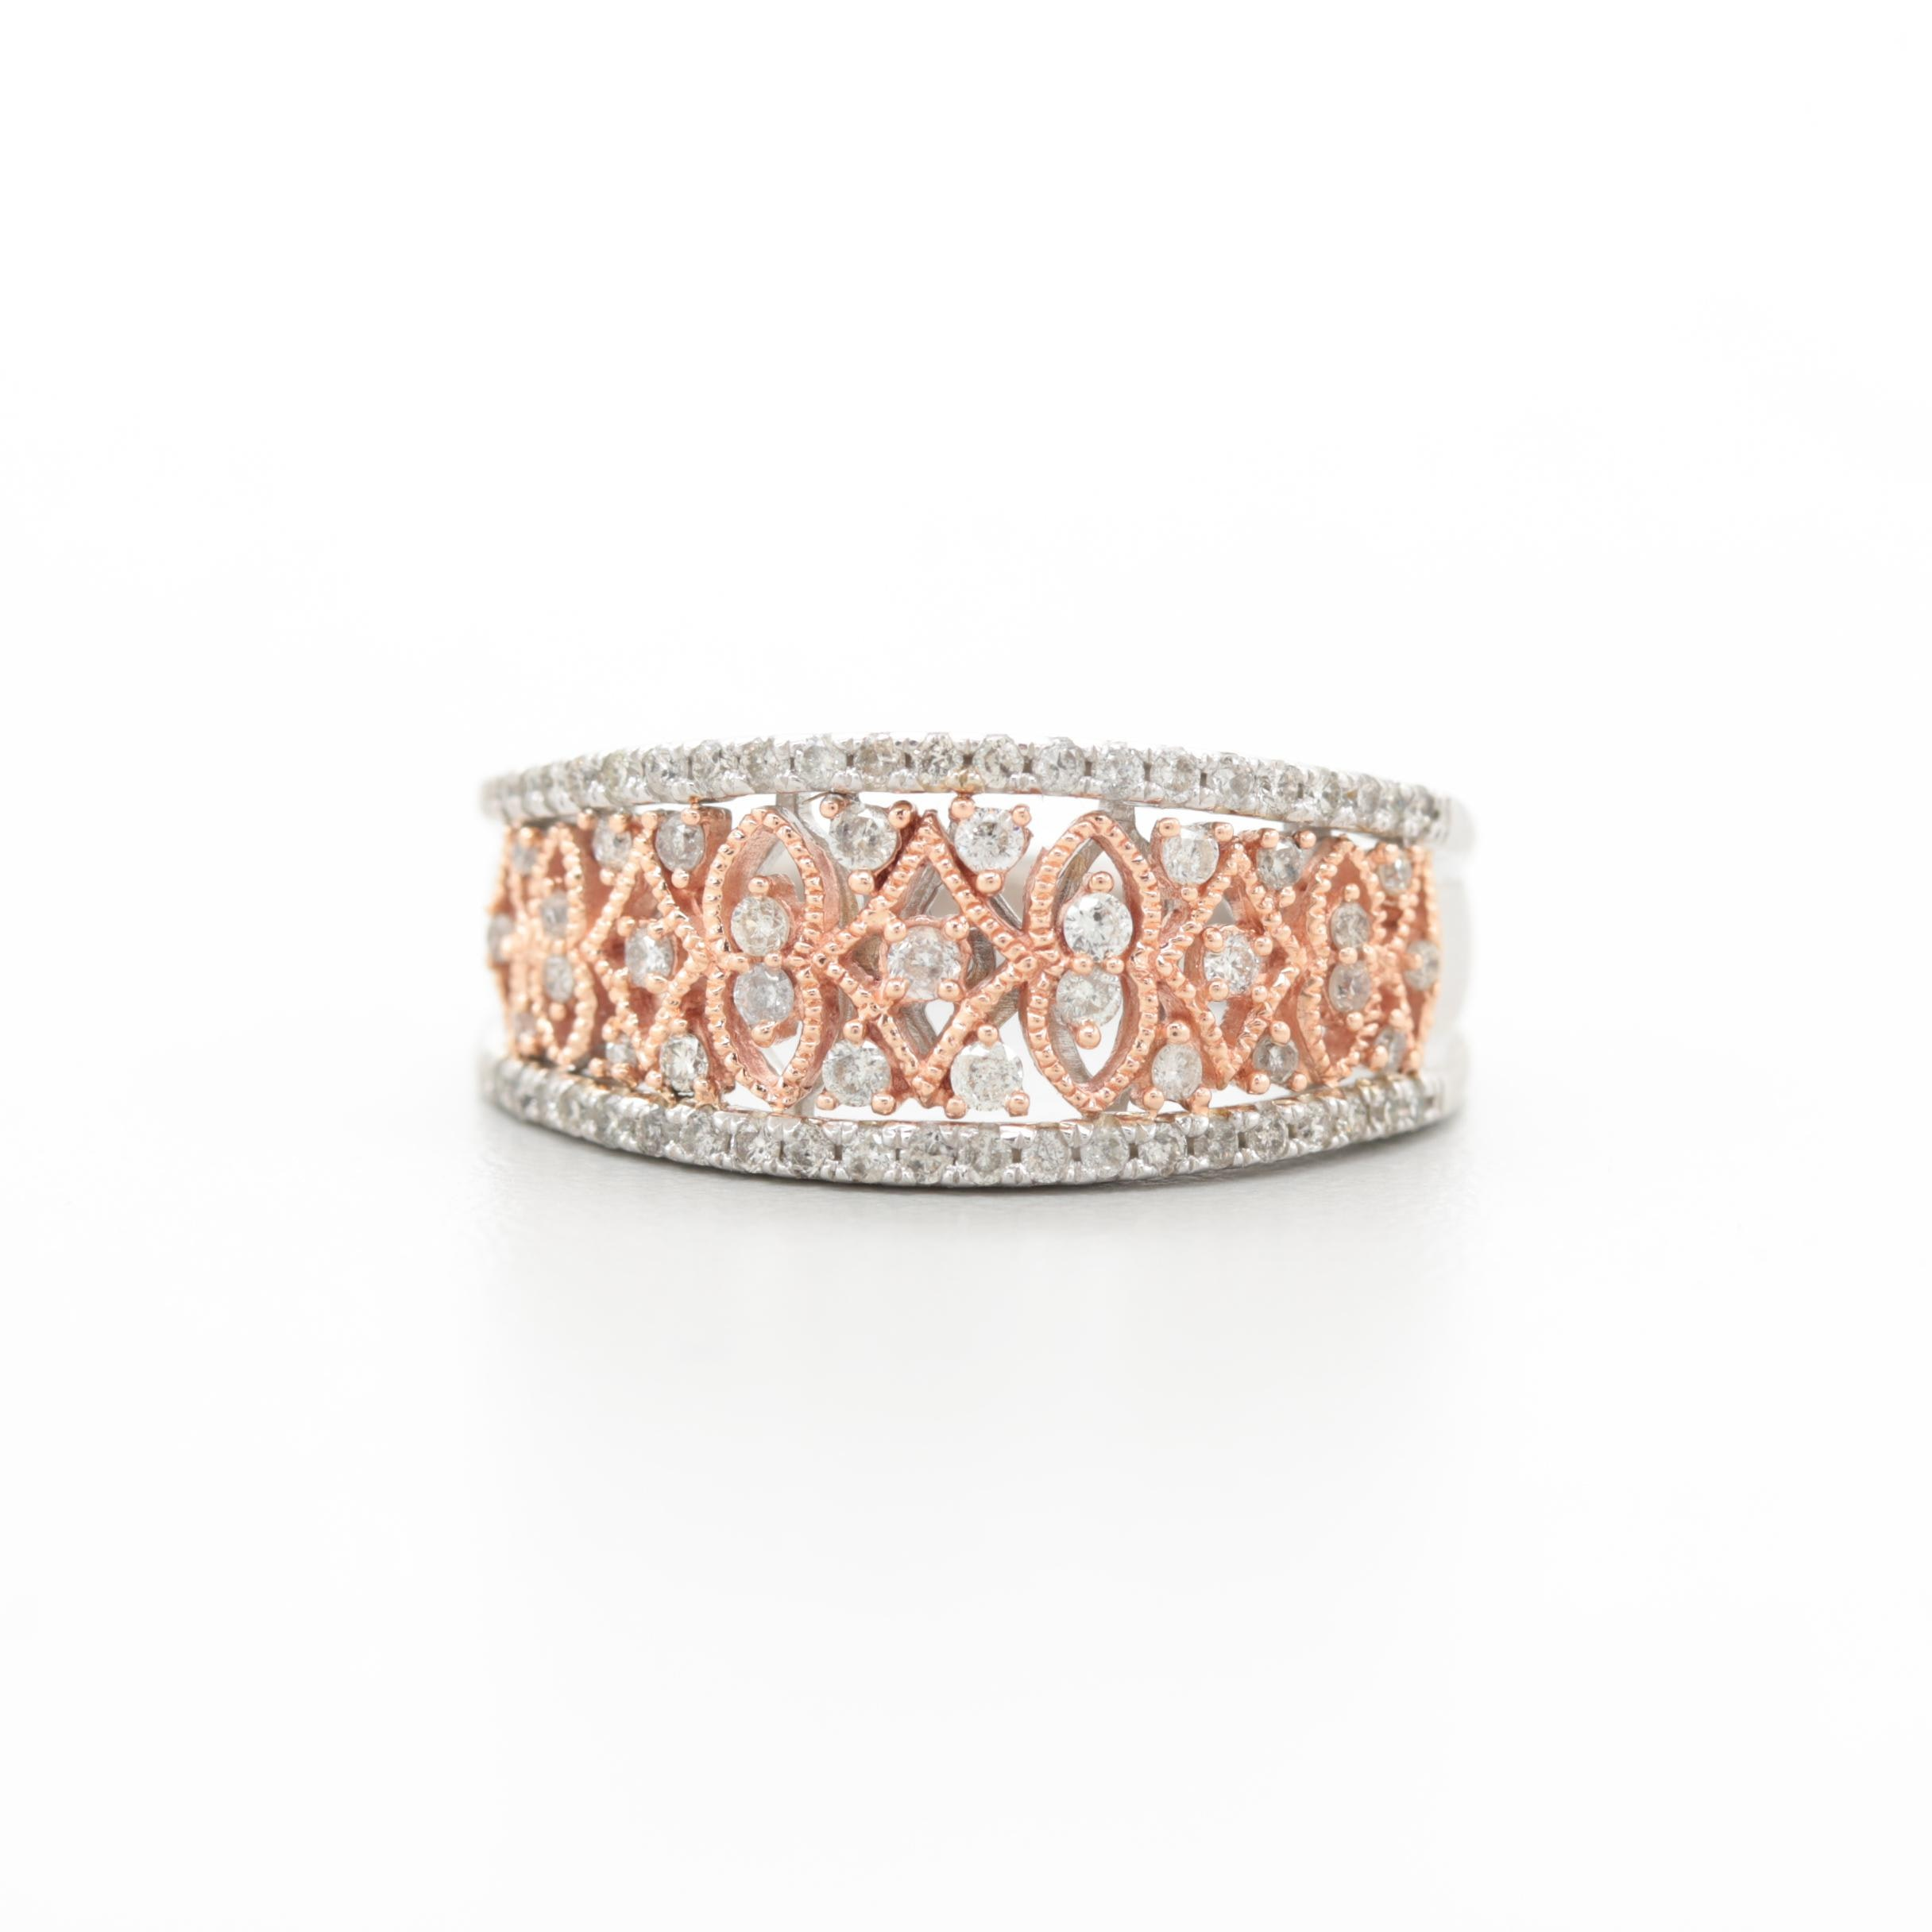 10K White Gold Diamond Ring with Rose Gold Openwork Accents